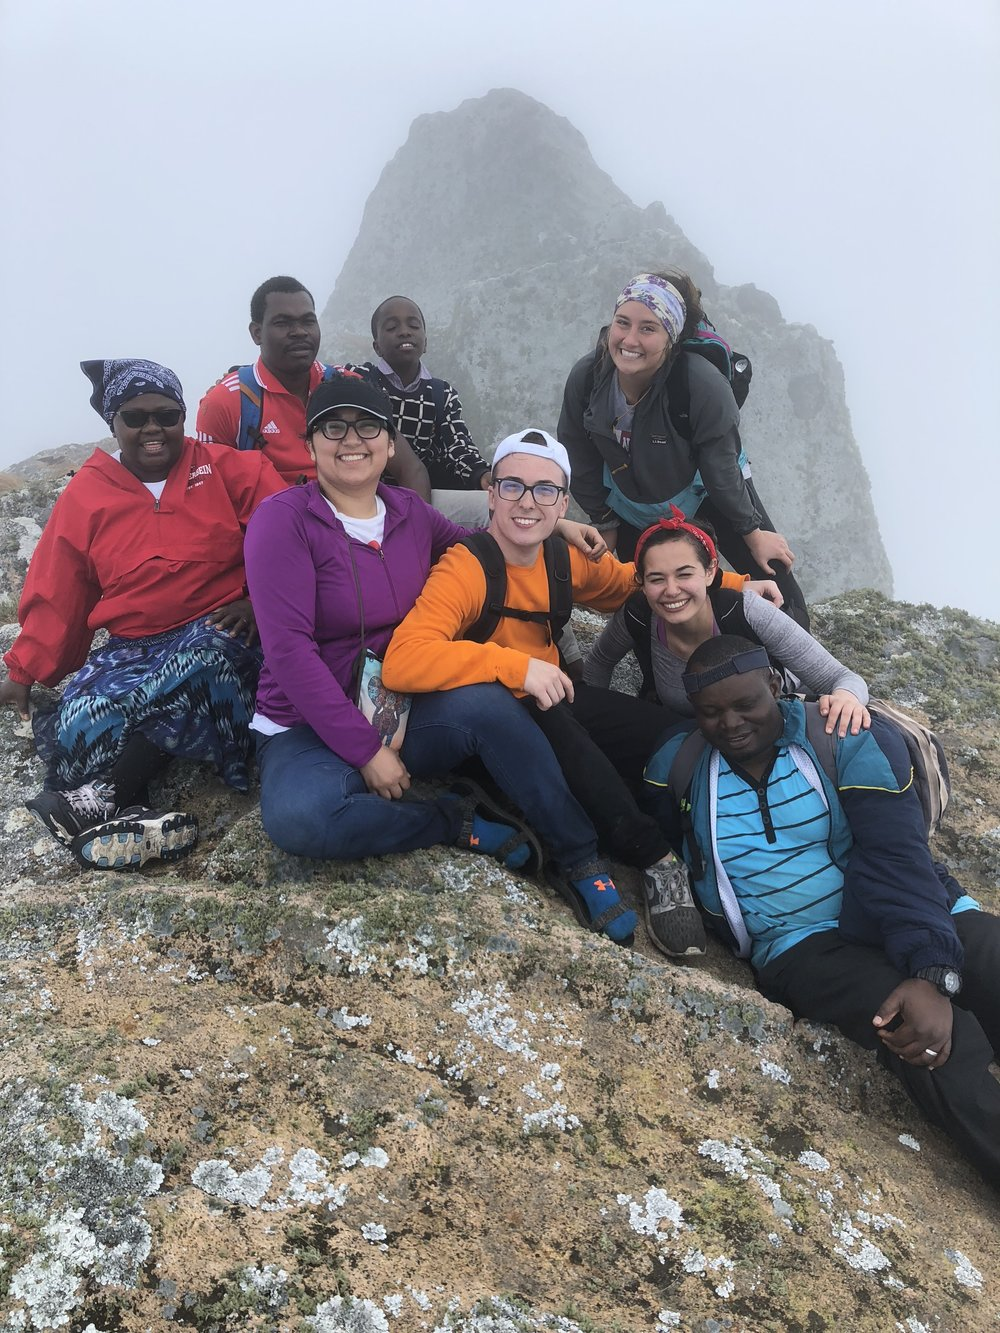 Nyathipa, Ernest, Mwenecho and Justice pose with students at the top of Mount Nkhoma